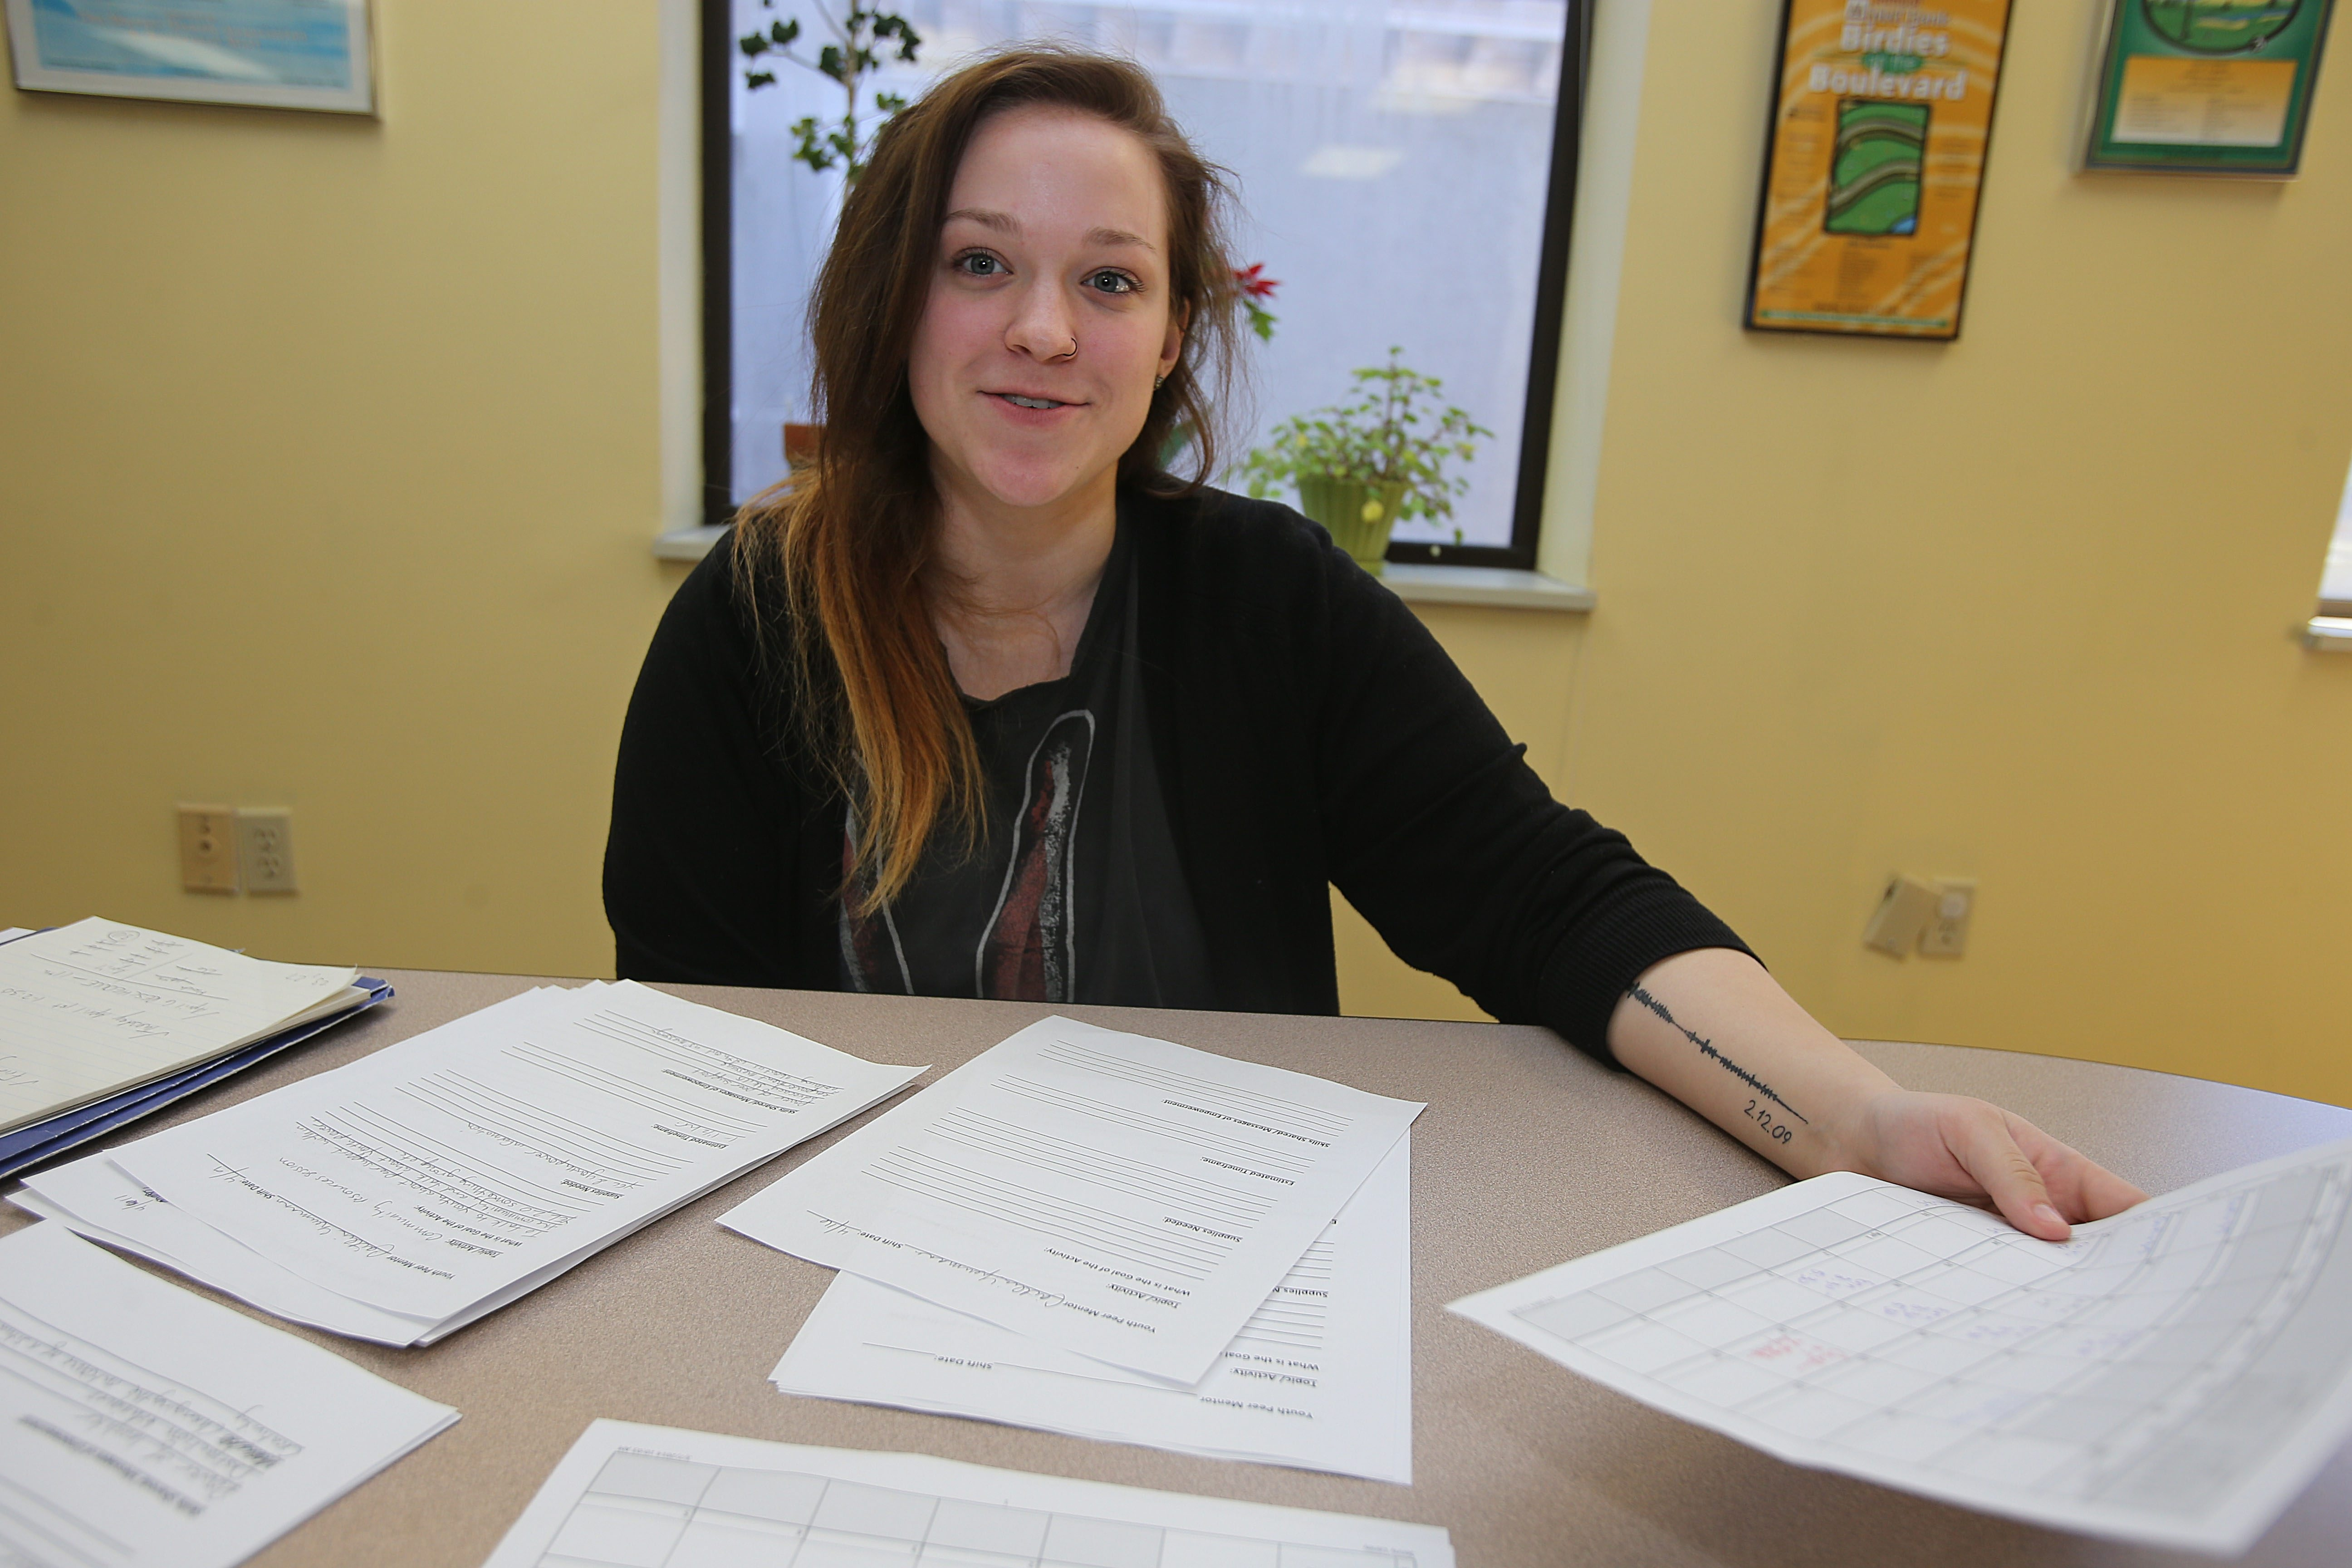 Caitlin Neumann, working at the Mental Health Association of Erie County, Inc. offices in Buffalo, Friday, March 7, 2014. (Charles Lewis/Buffalo News)